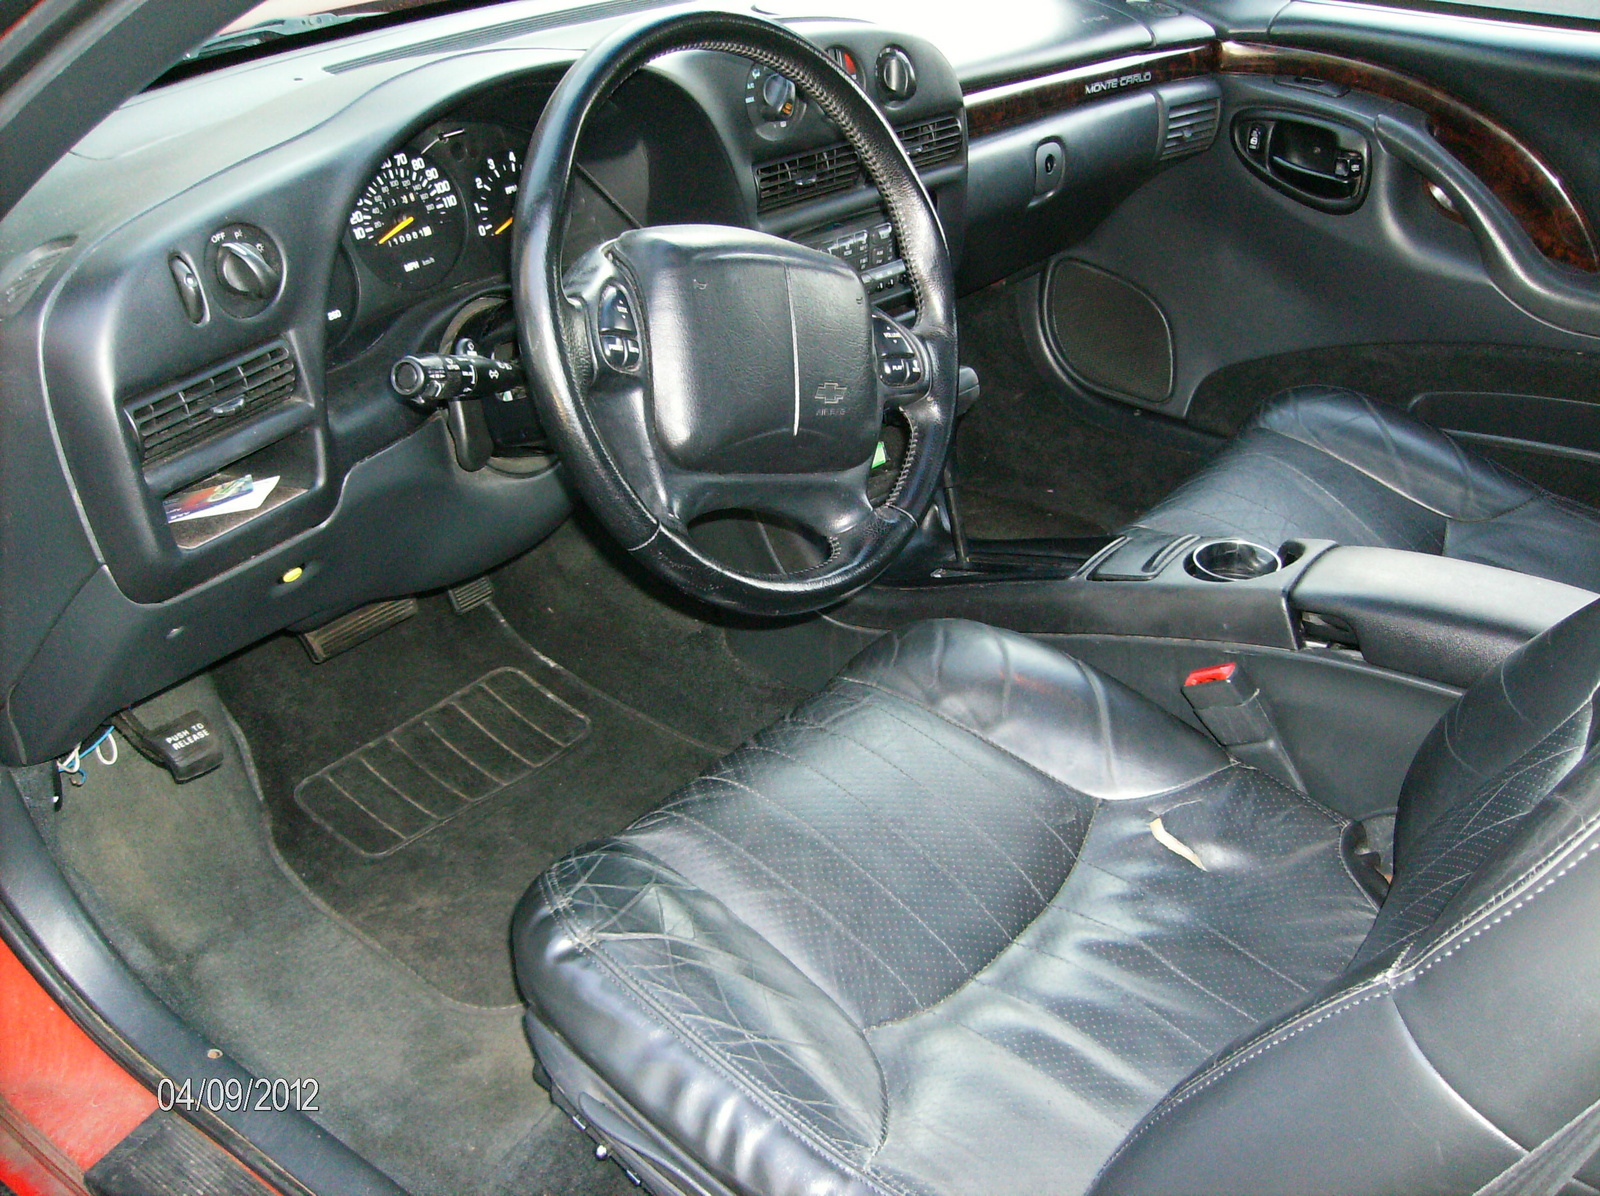 All Chevy 1999 chevrolet monte carlo z34 : famous to monte carlo 2 dr z34 coupe pictures 1999 chevrolet monte ...